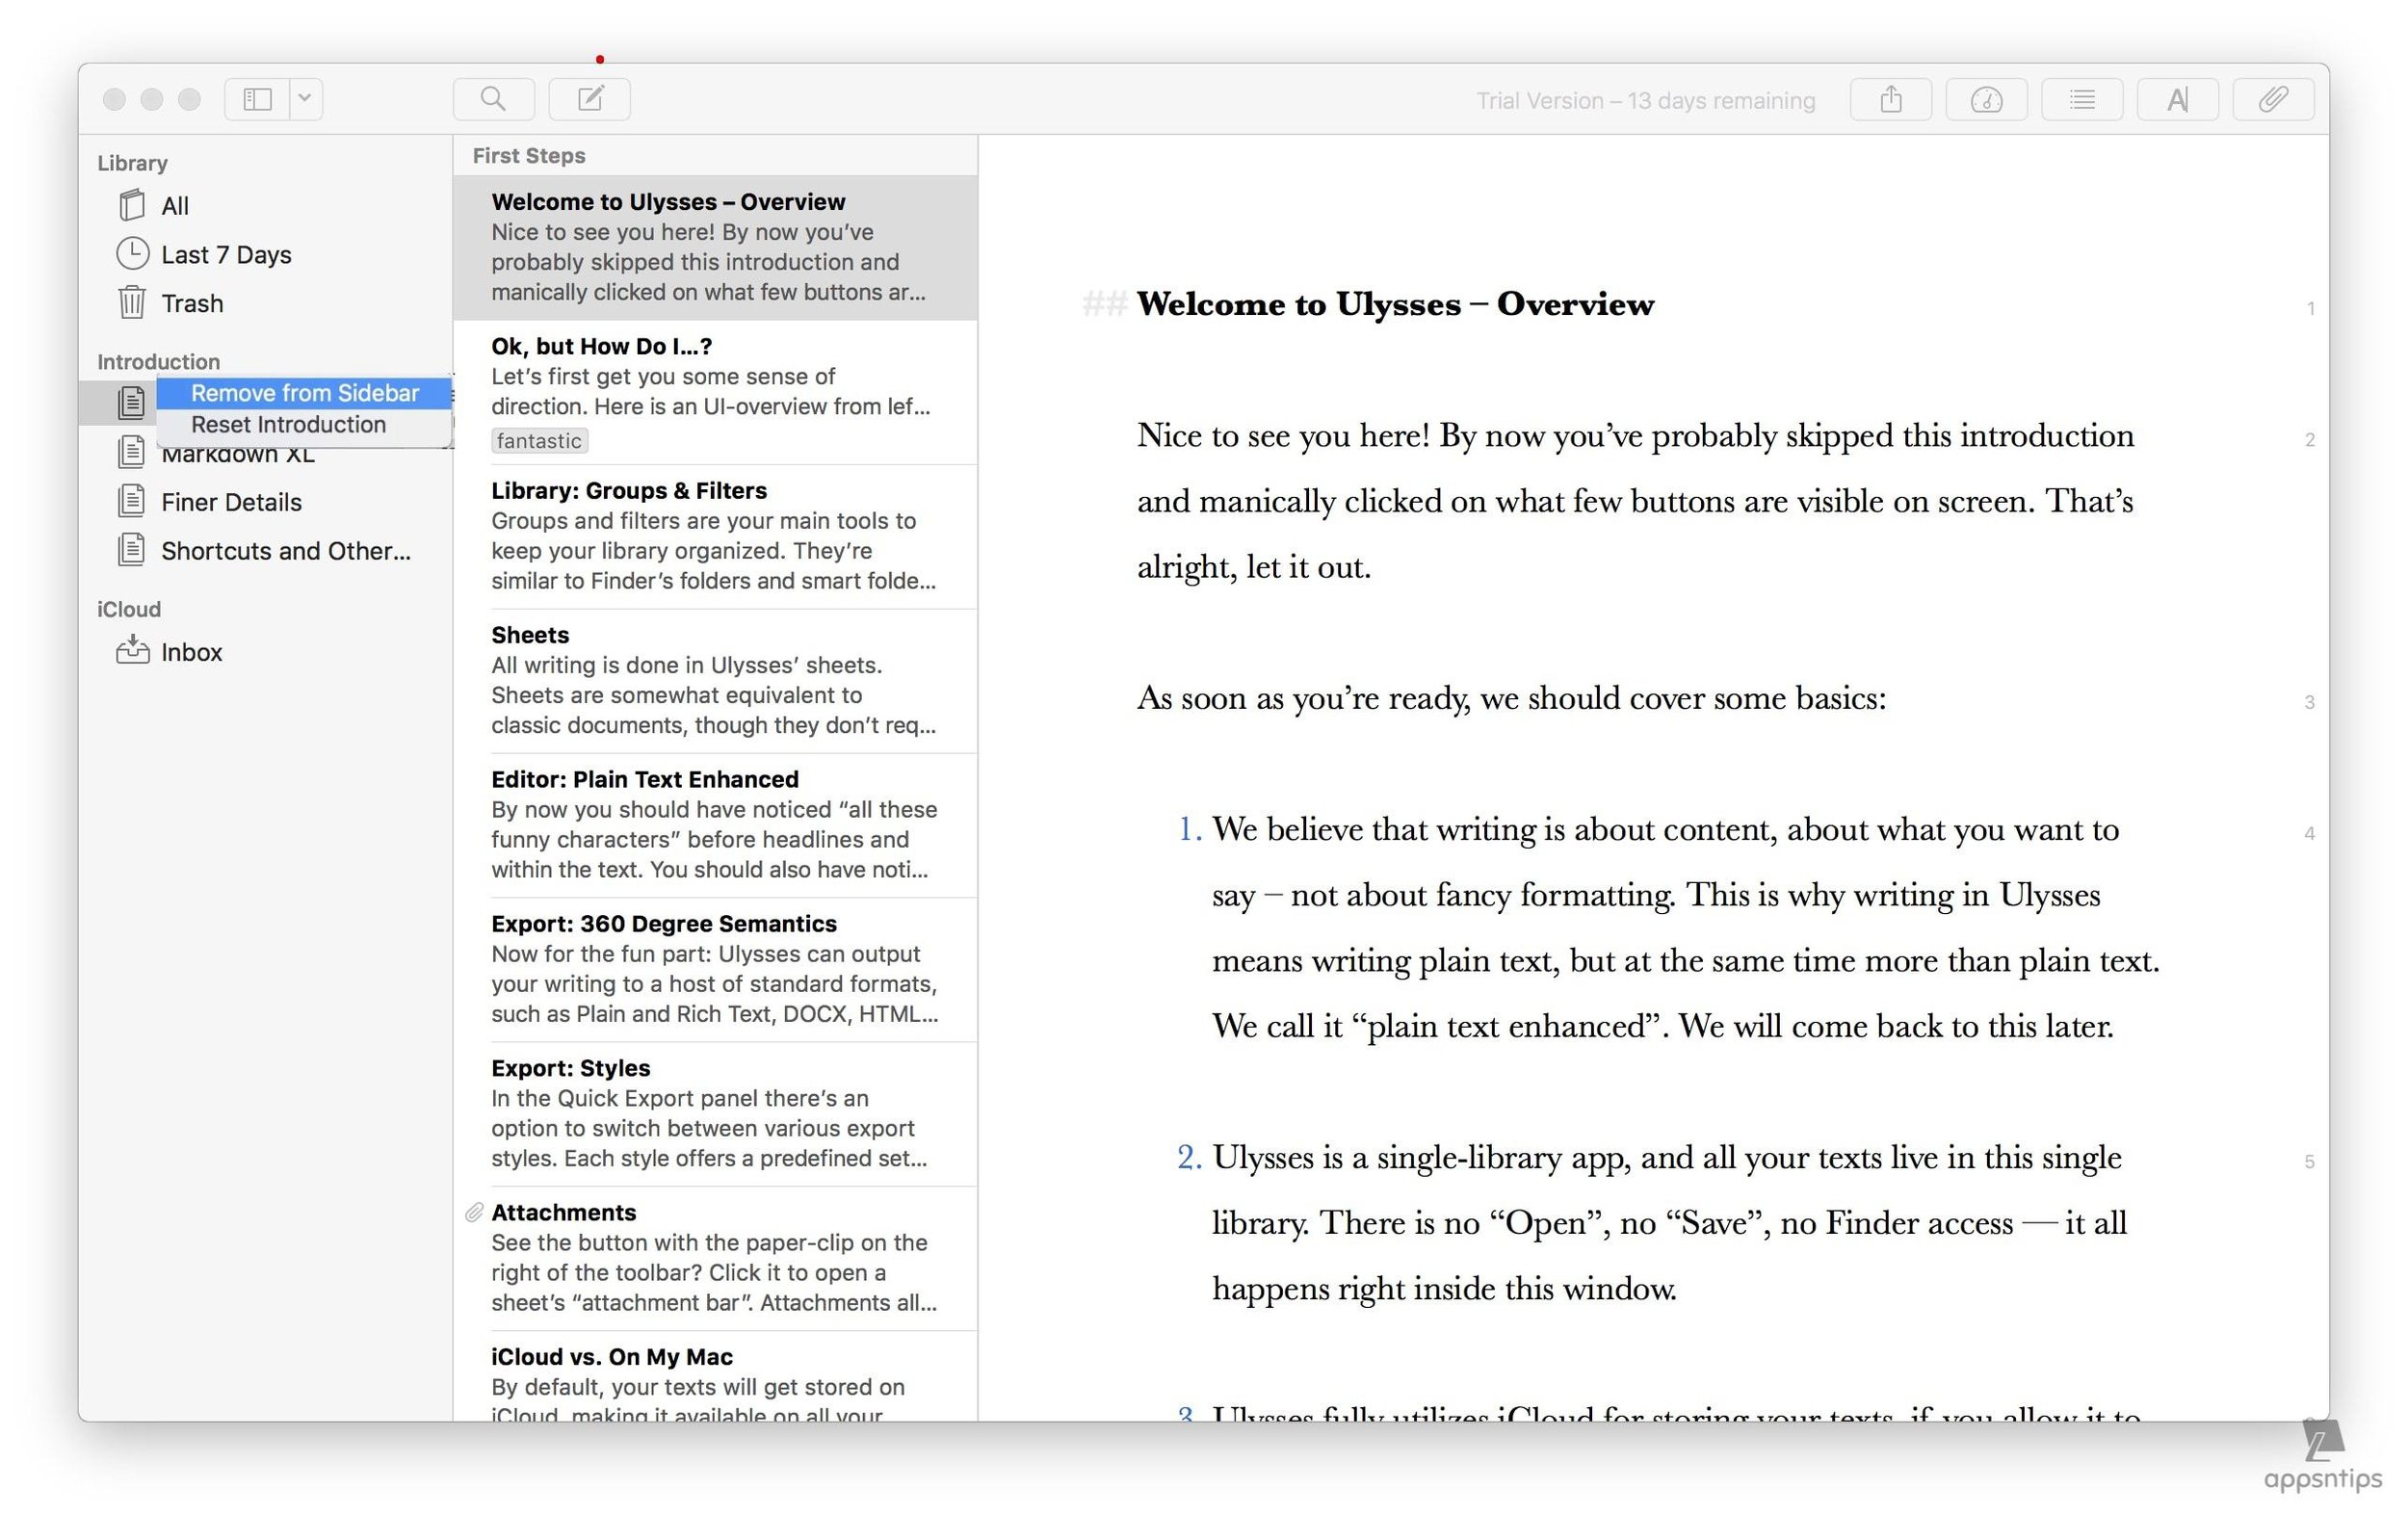 Ulysses: First Looks, Basics, and Preferences Configuration 2.jpg